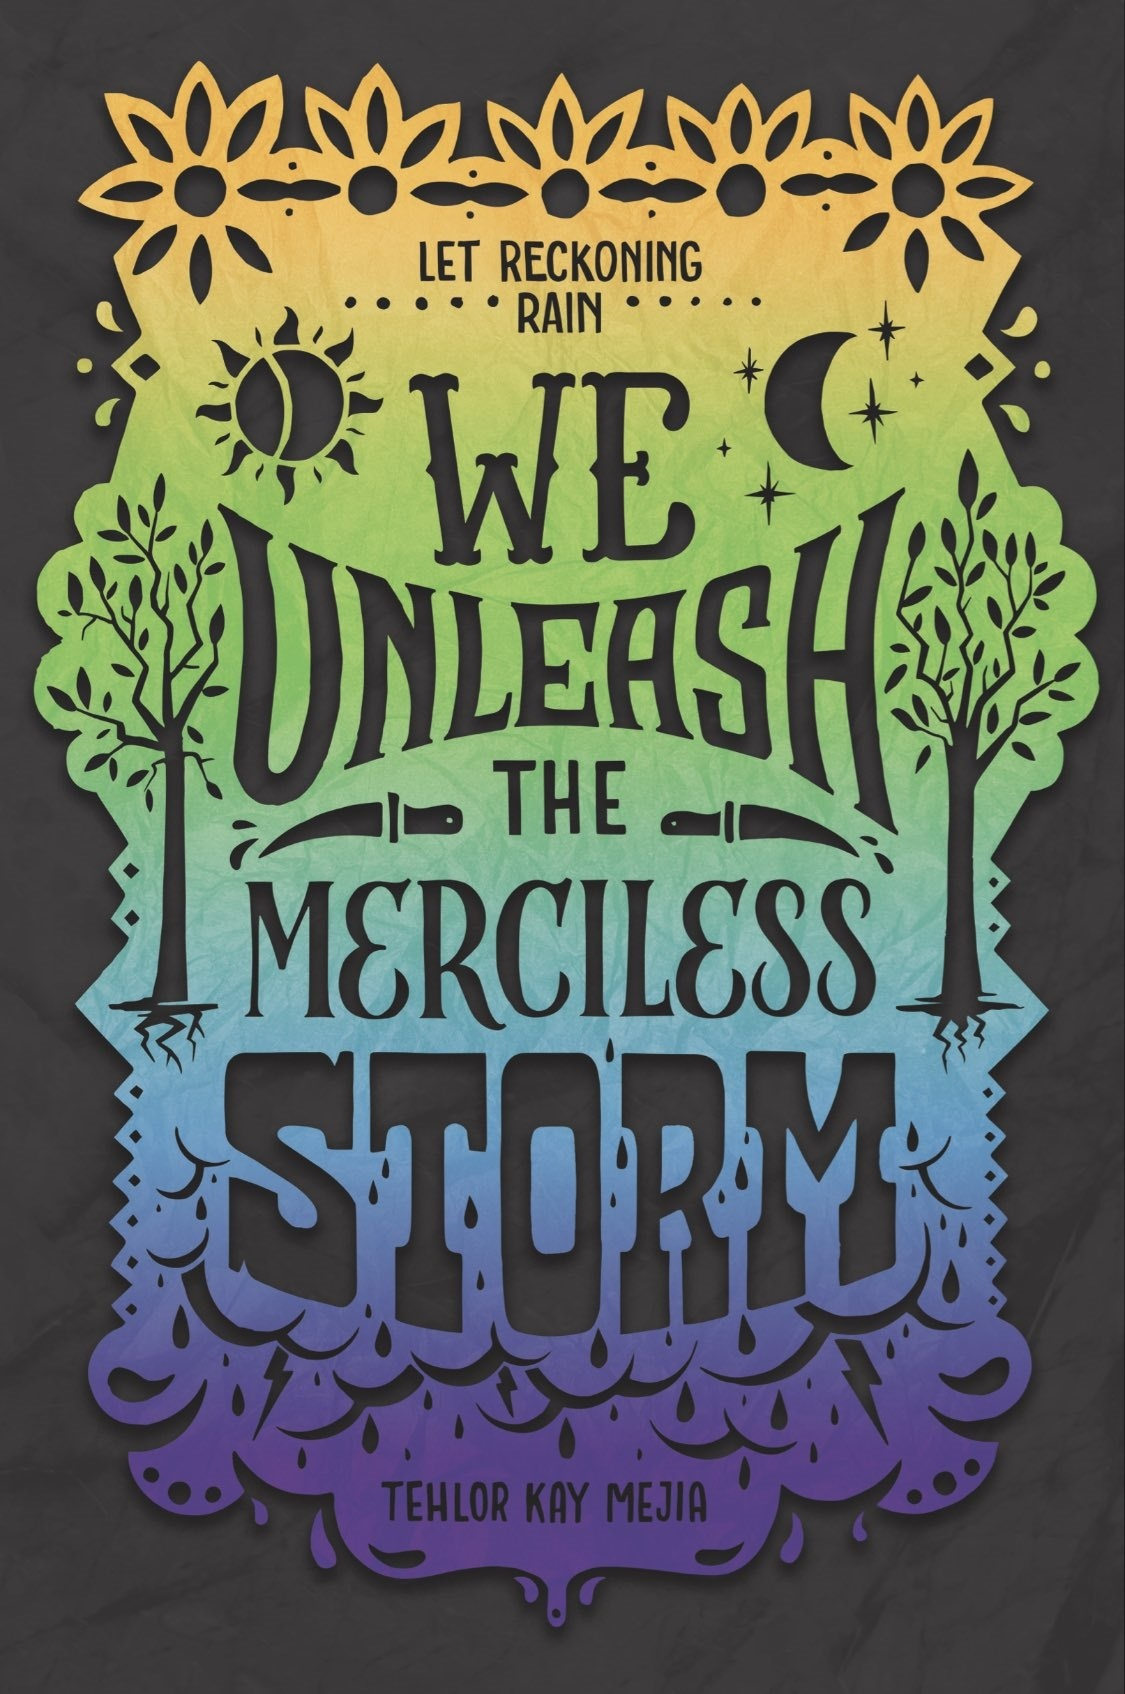 We Unleash the Merciless Storm - Tehlor Kay Mejia